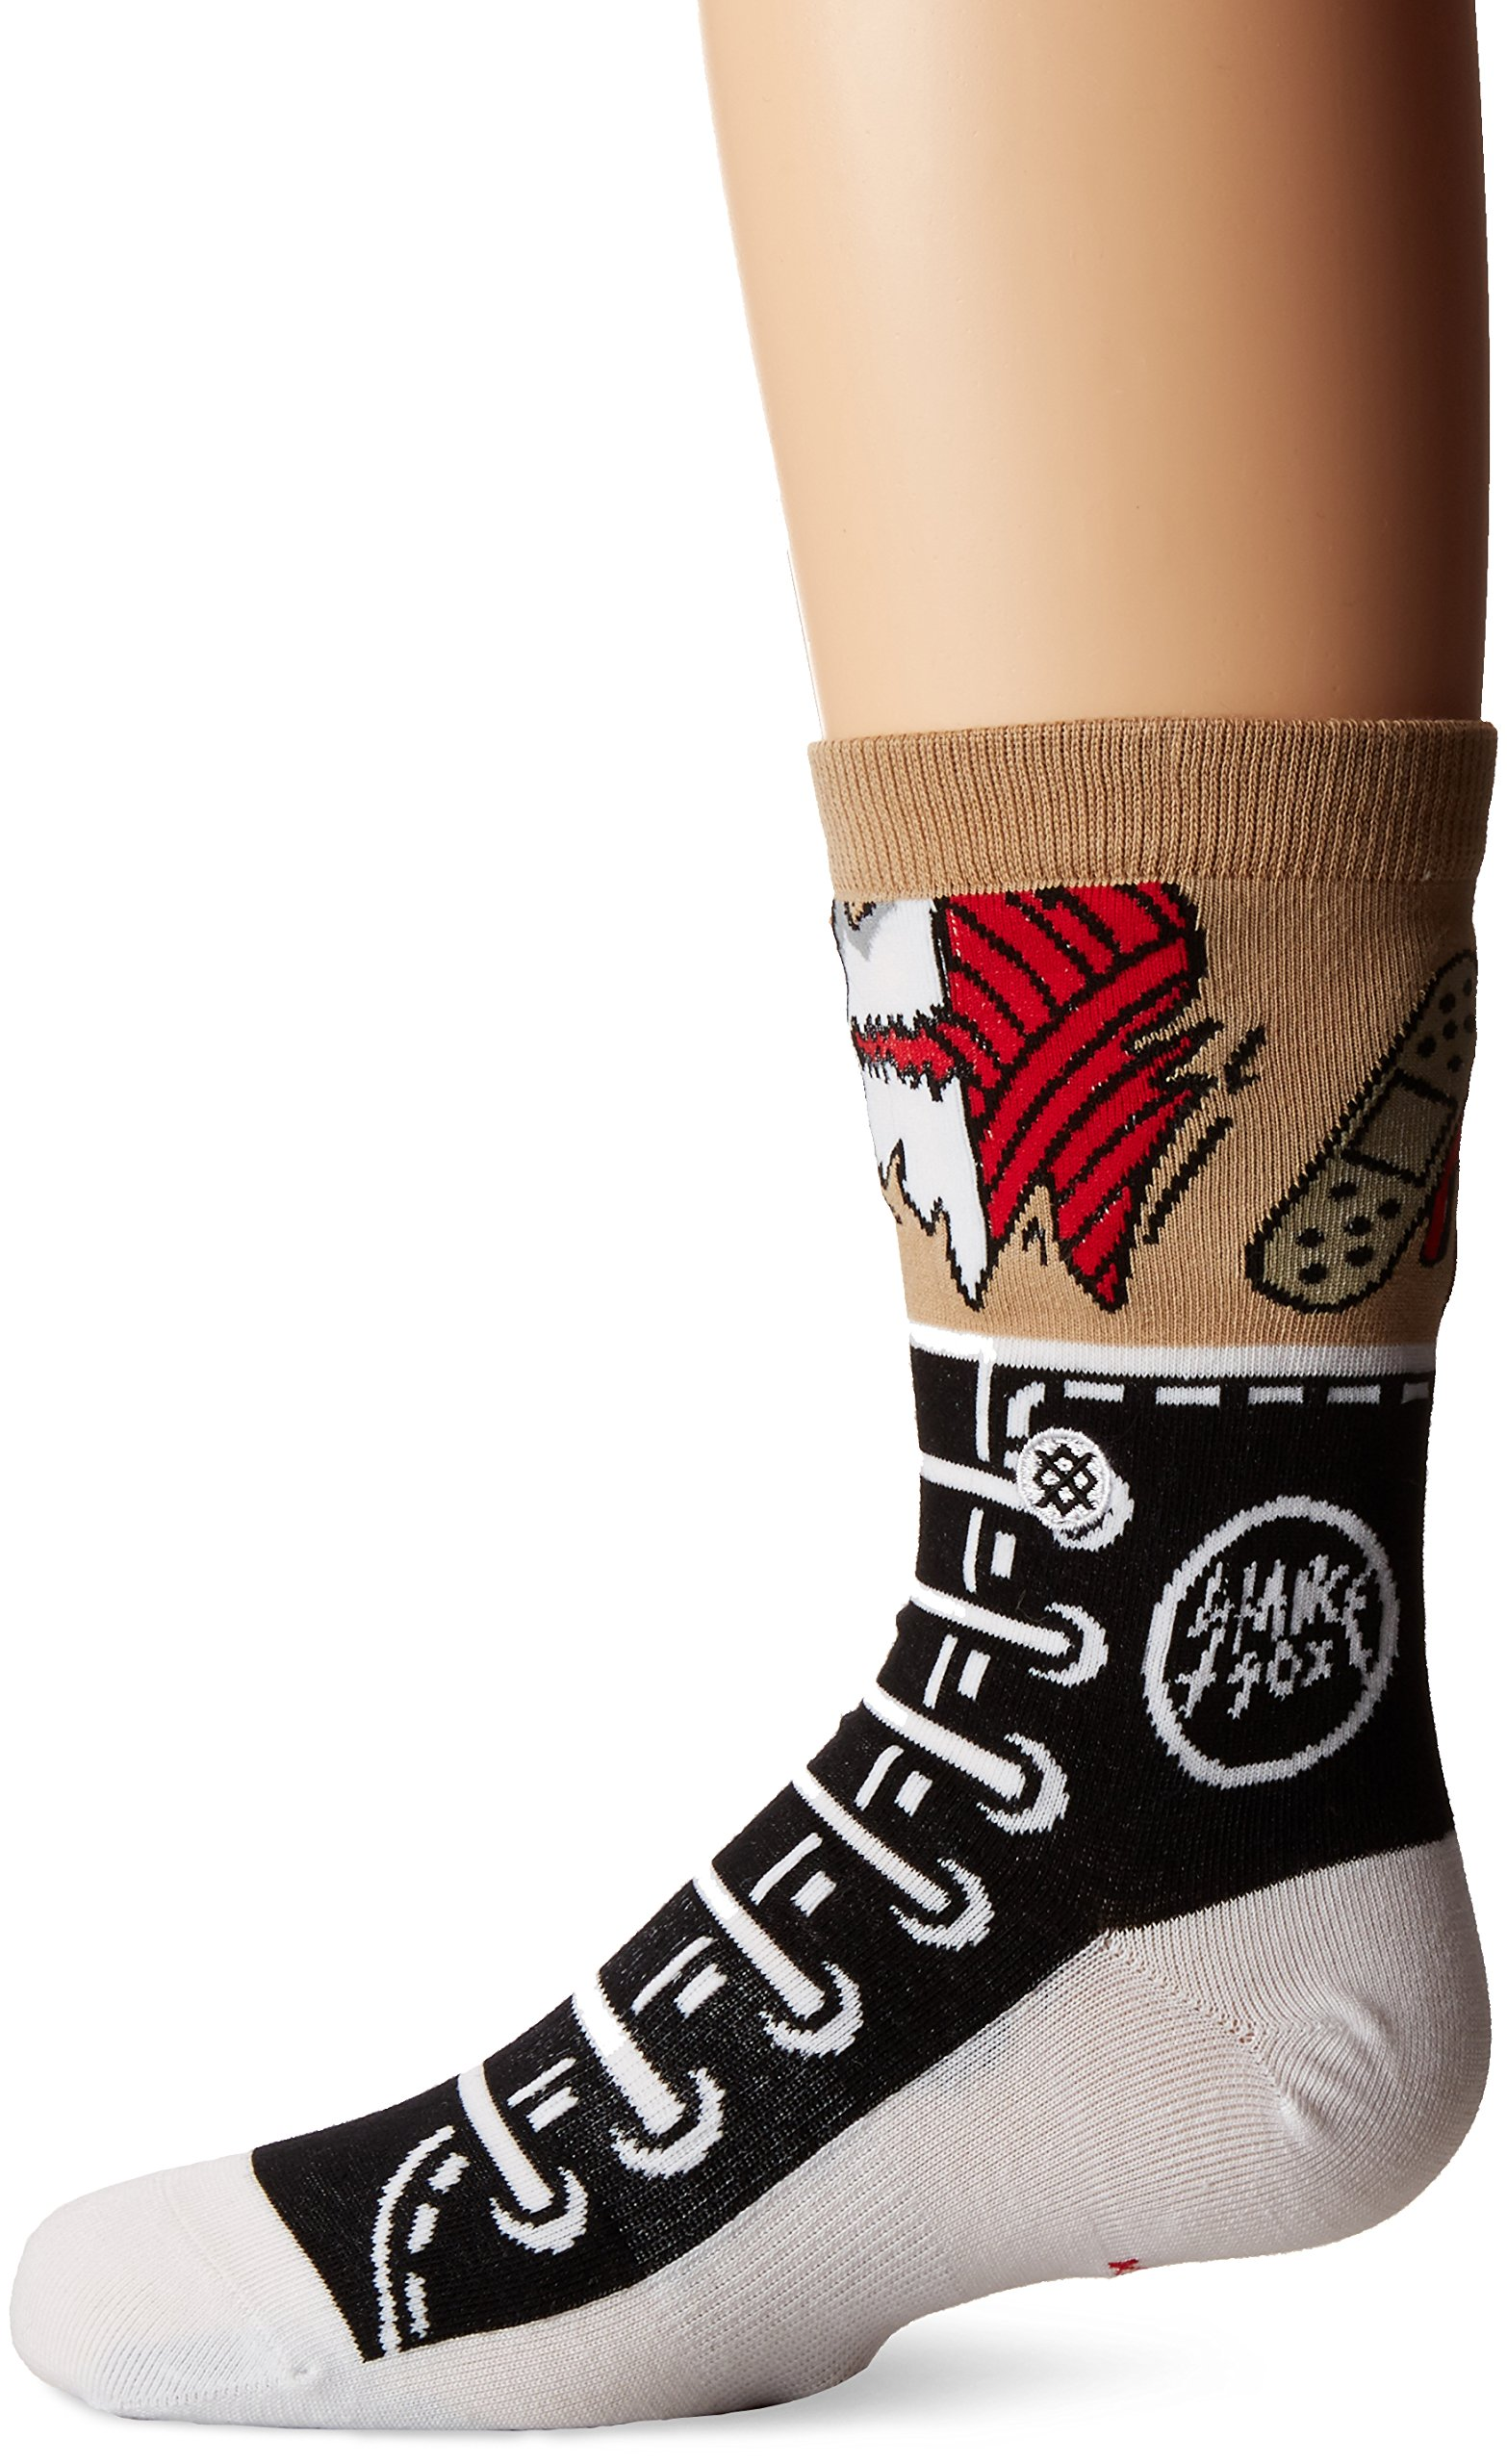 Stance Little Boys' Dragger Graphic Sneaker Reinforced Toe and Arch Support Crew Sock, Black, M